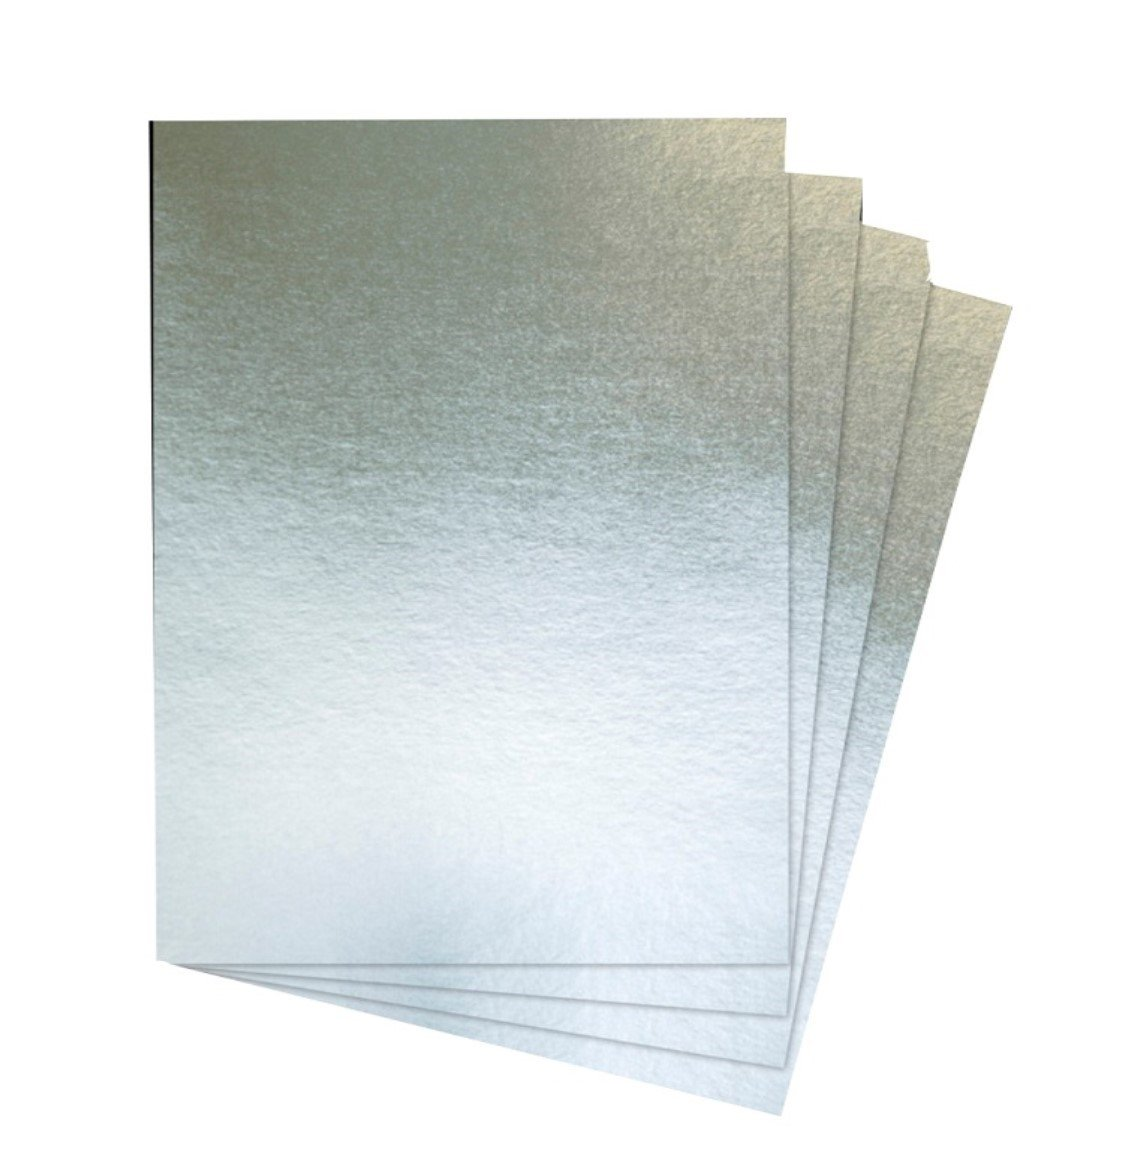 House of Card & Paper A2 240 GSM Foil Card - Silver (Pack of 25 Sheets) HCP267